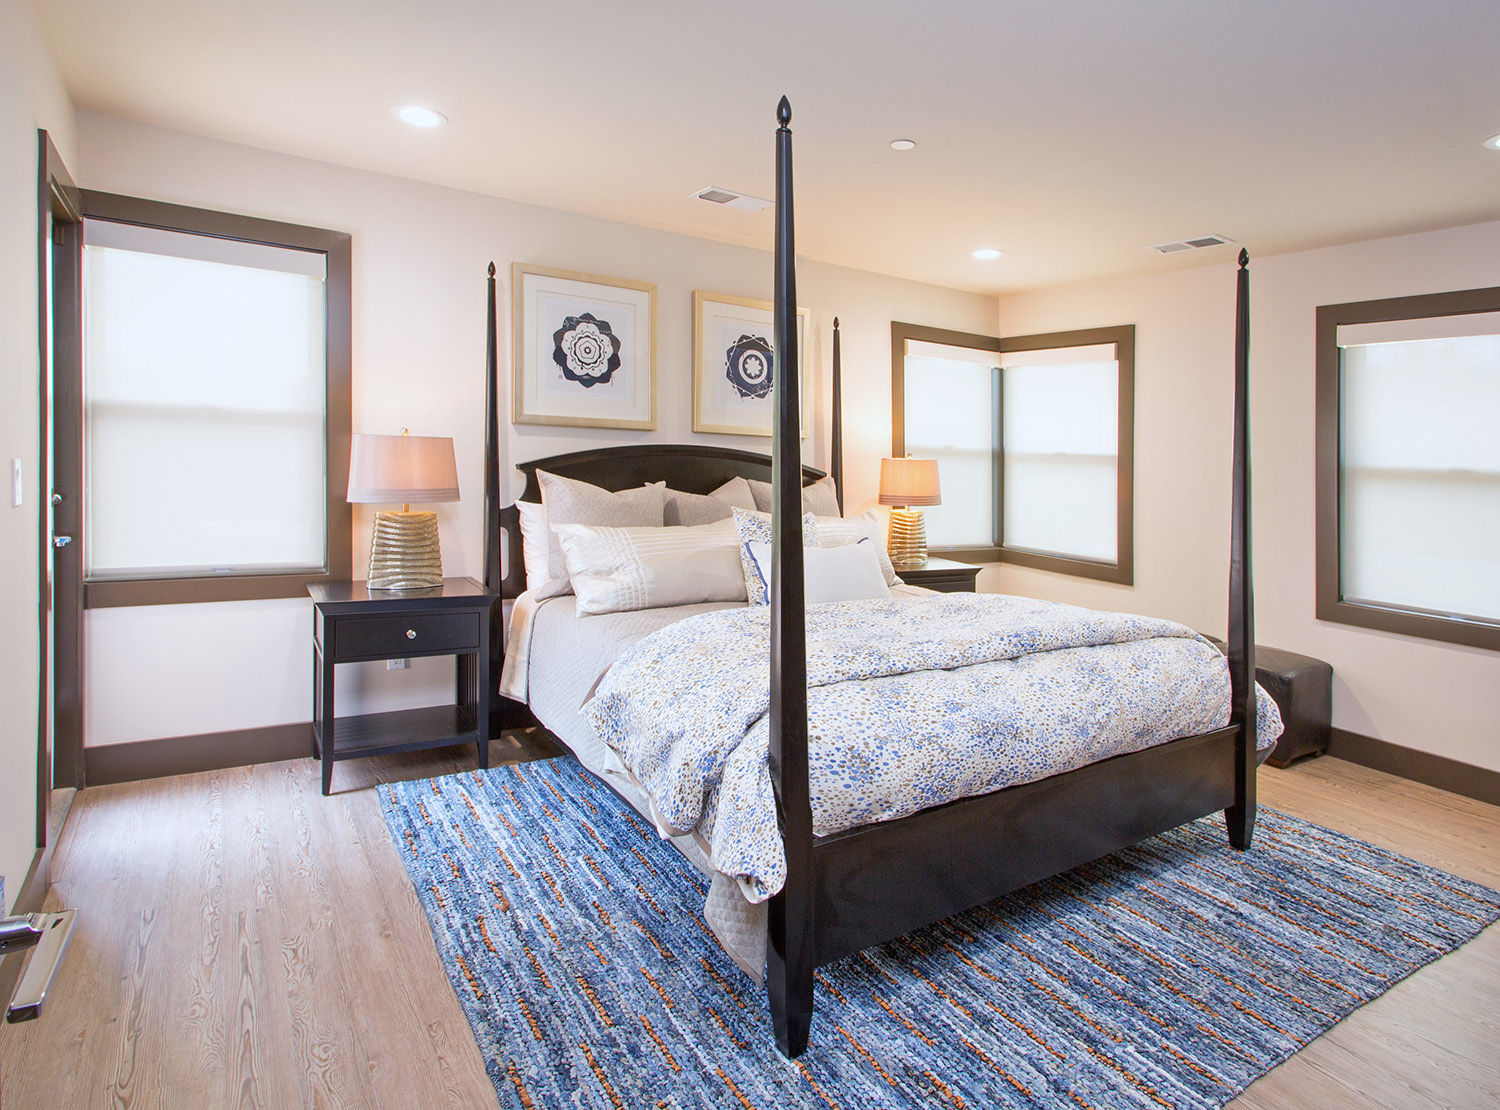 bedroom-interior-design-los-altos-california-ktj-design-co-1.jpg